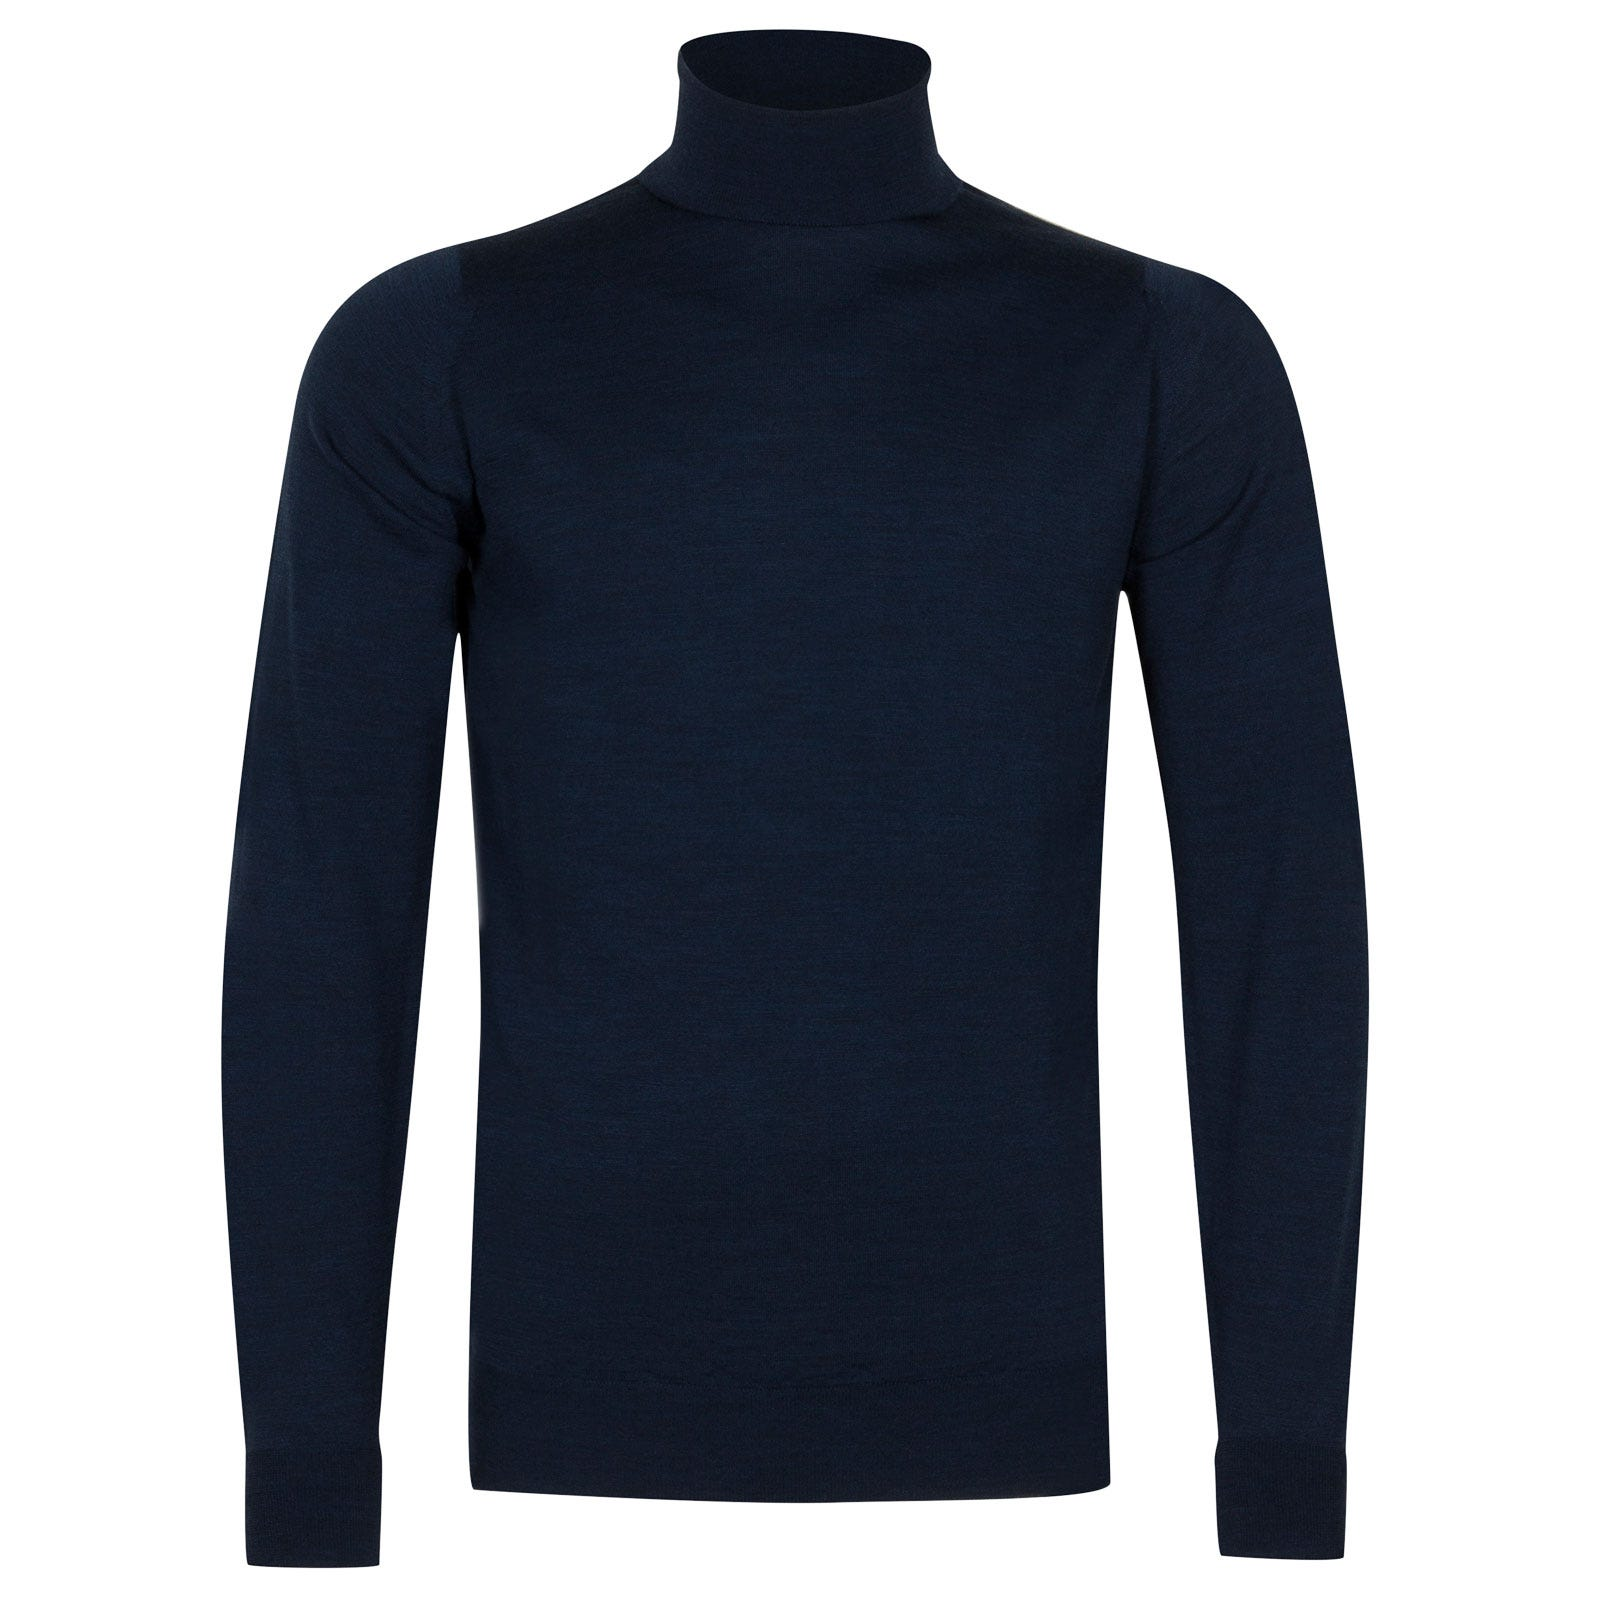 John Smedley richards Merino Wool Pullover in Indigo-XL